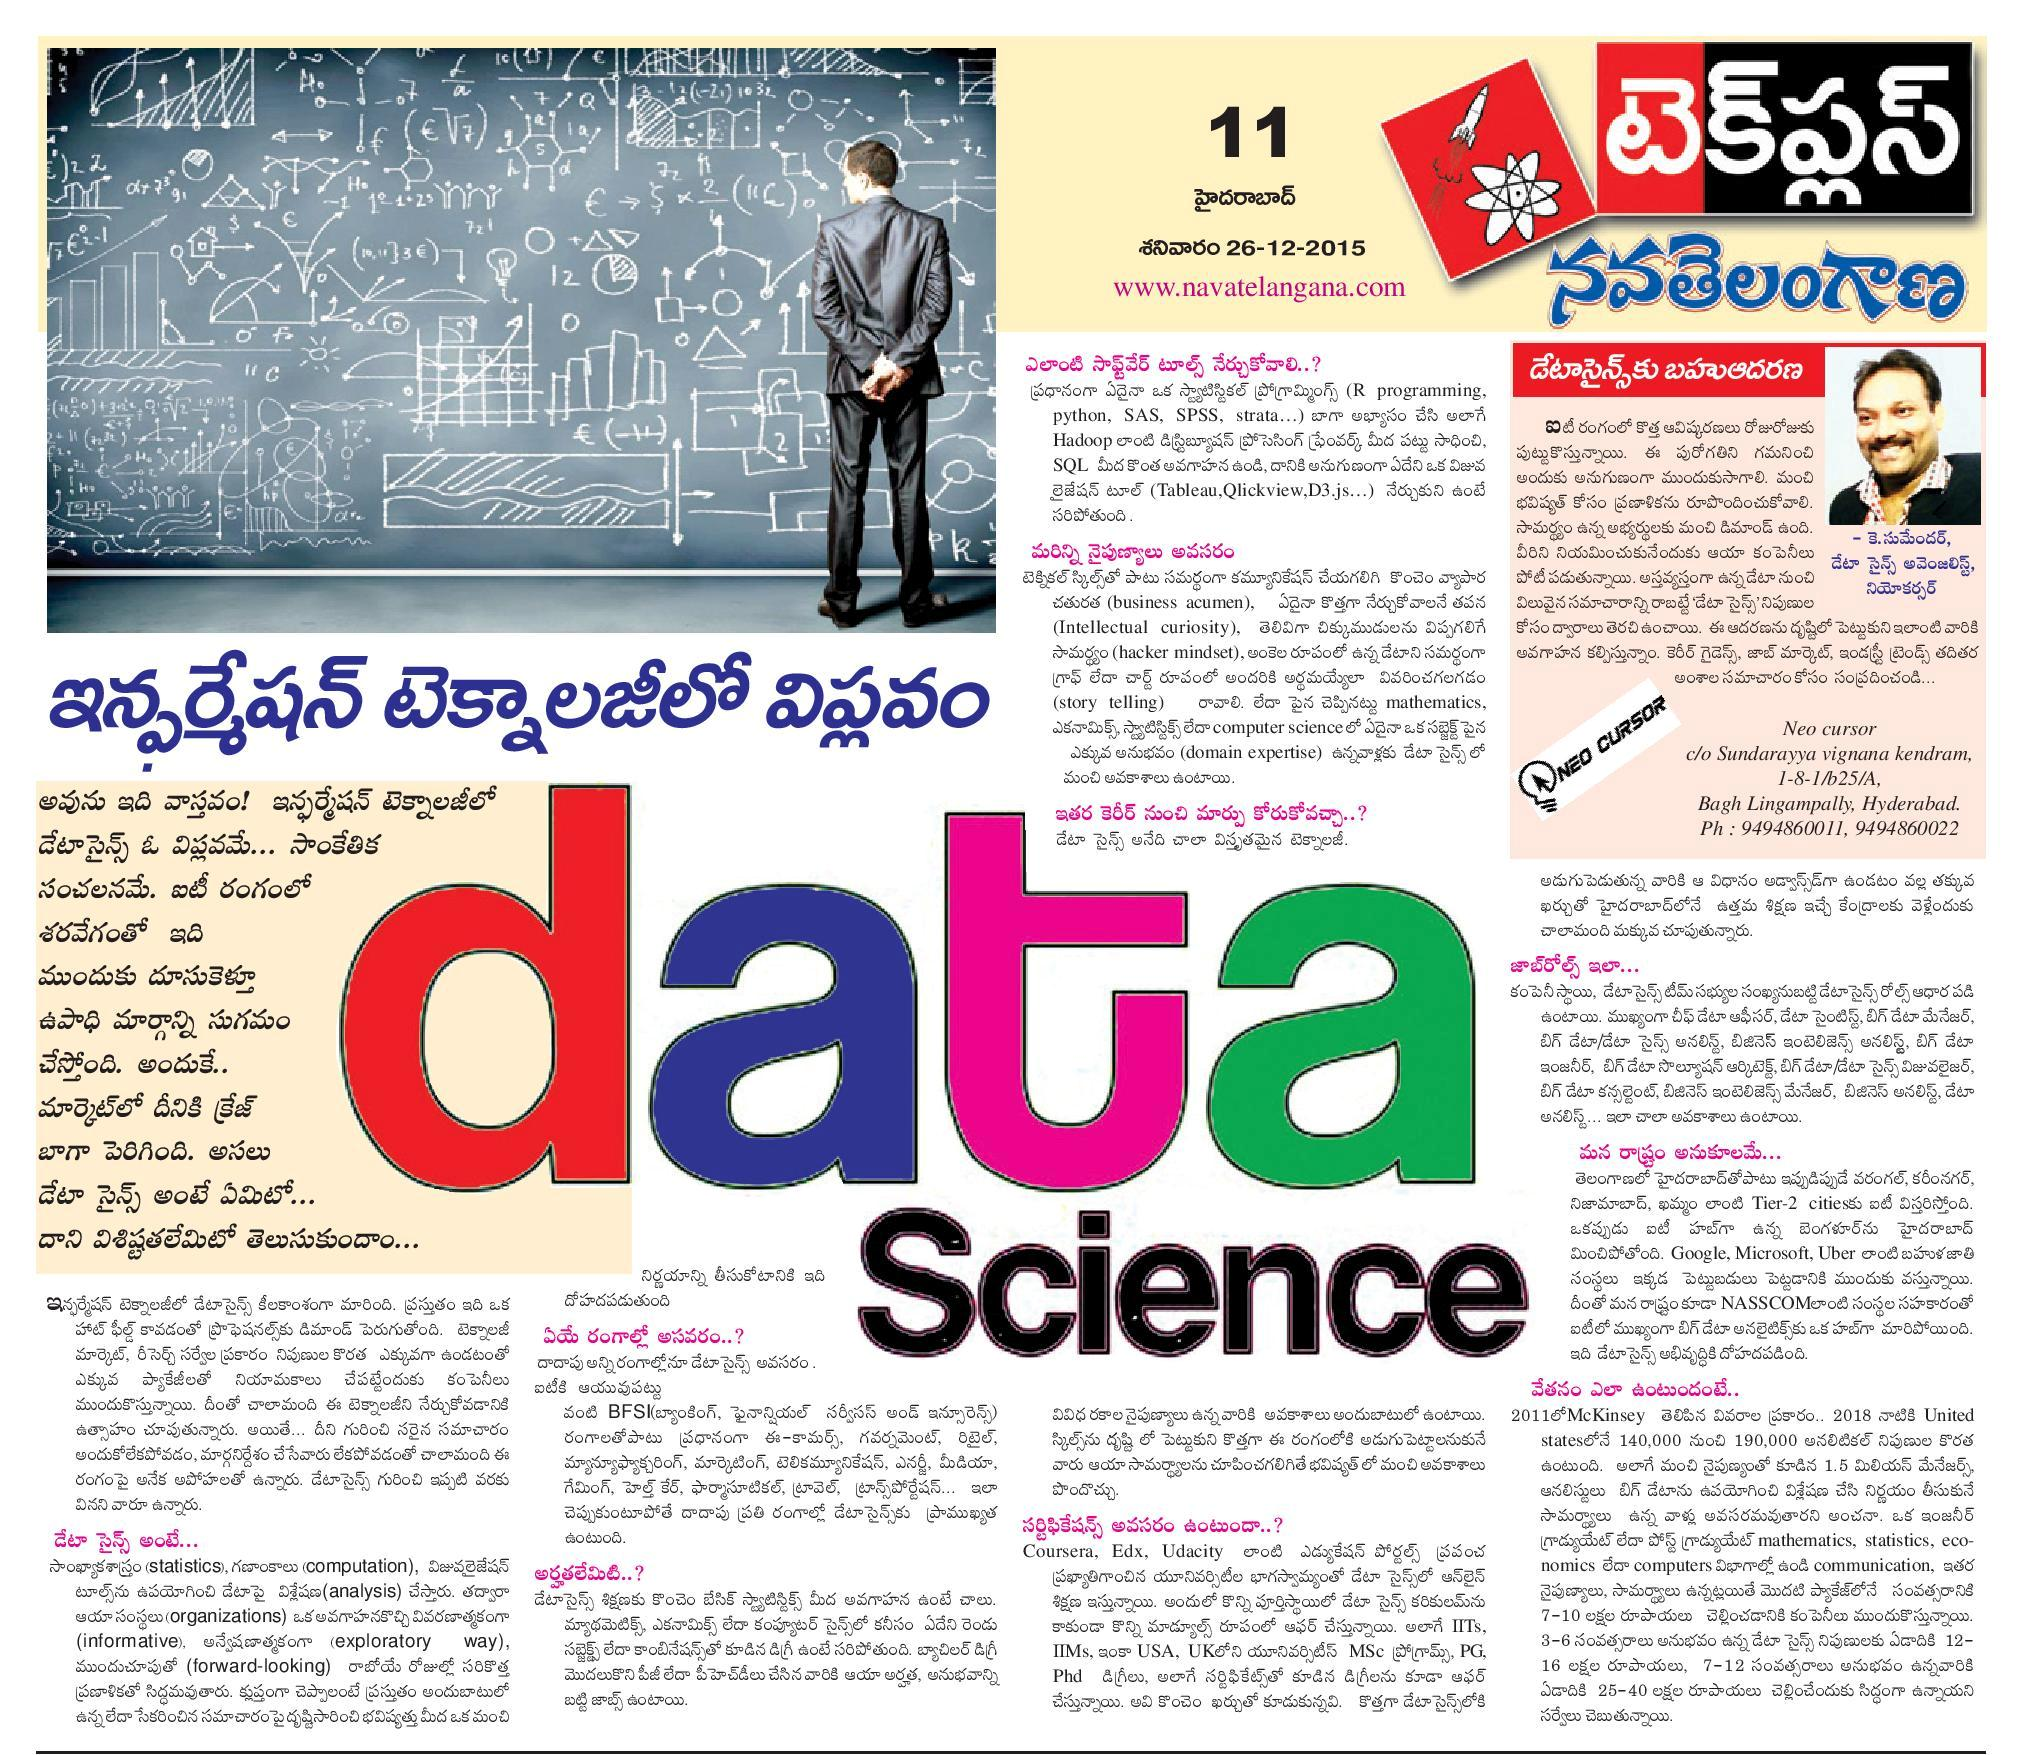 Latest Trending technology Data Science